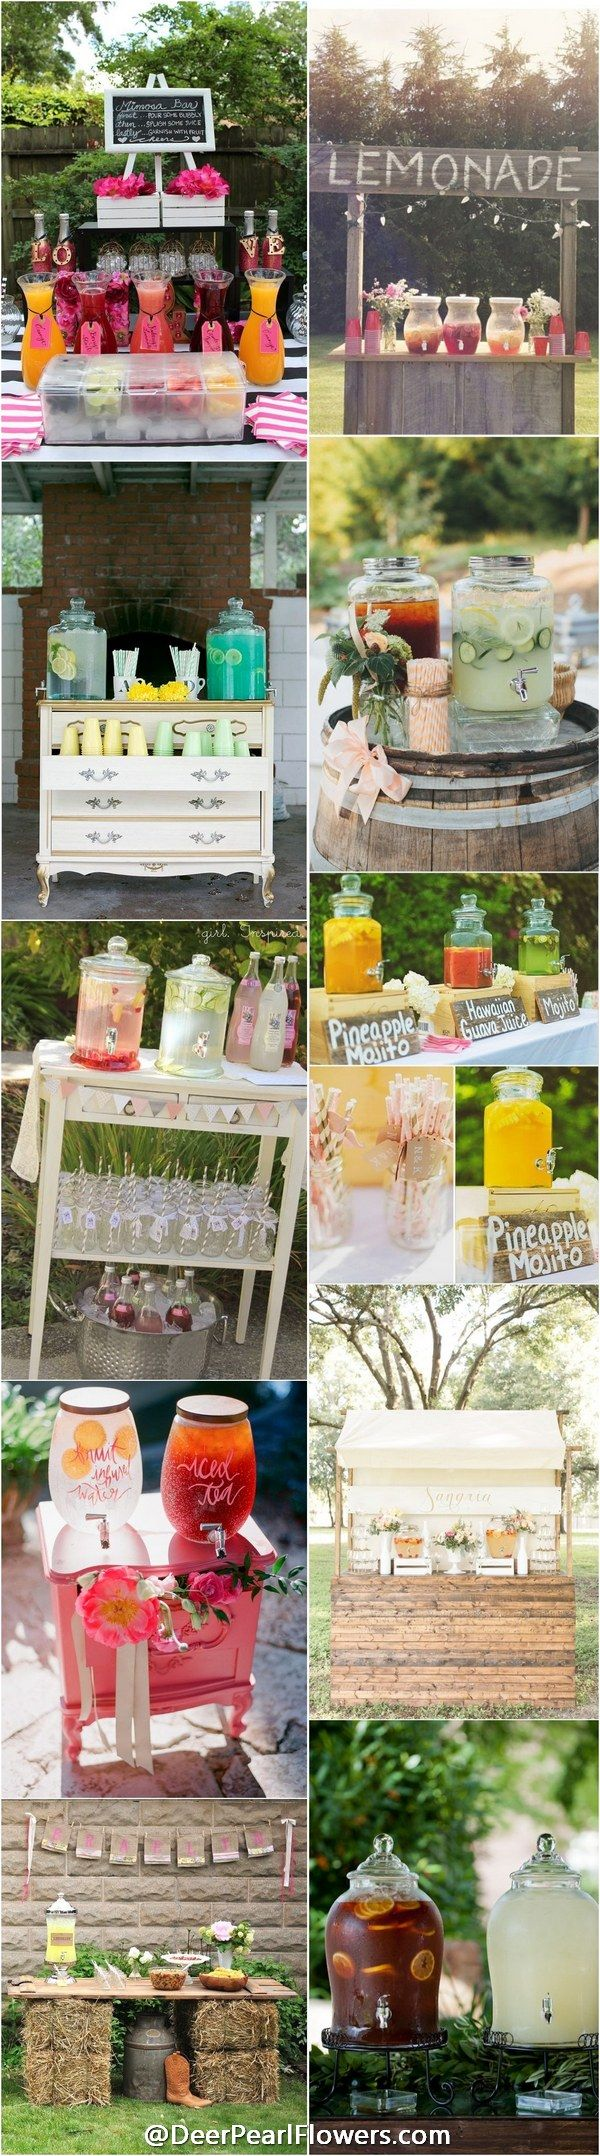 40 Creative Wedding Drink Bar Station Decor Ideas